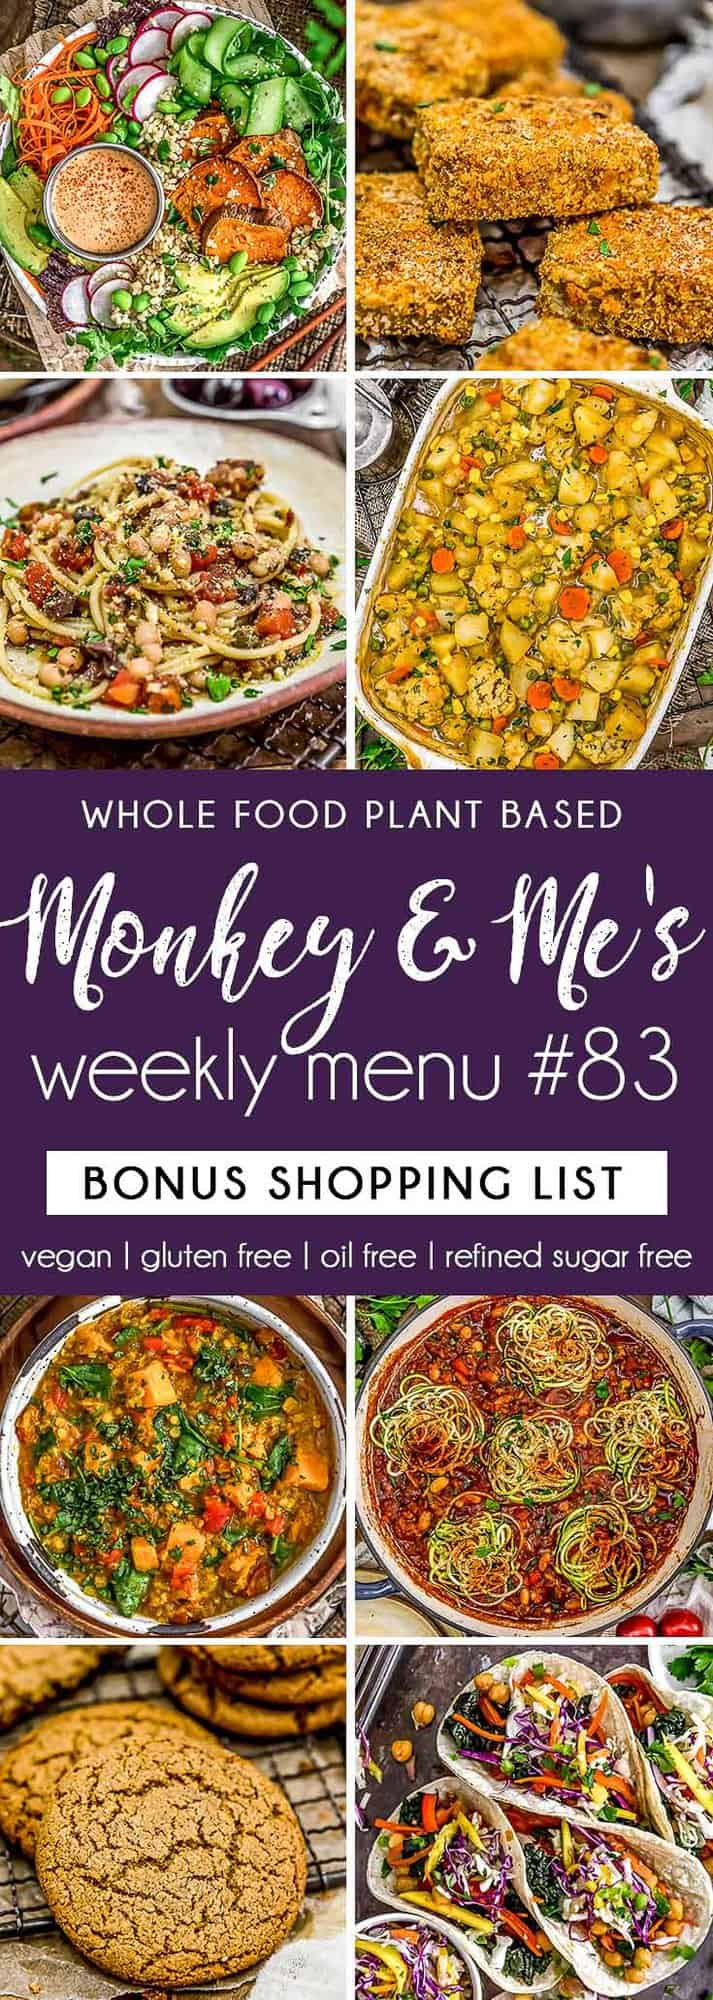 Monkey and Me's Menu 83 featuring 8 recipes